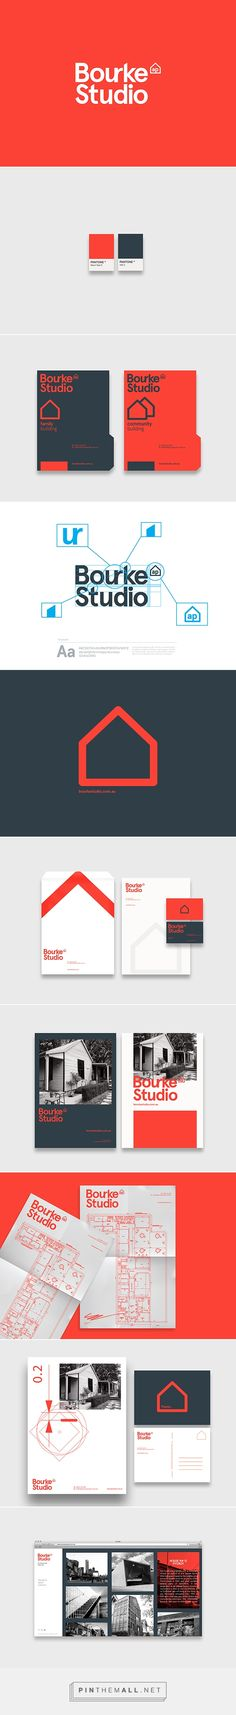 Bourke Studio on Behance - - - - - - - - - - - - - - --... - a grouped images picture - Pin Them All